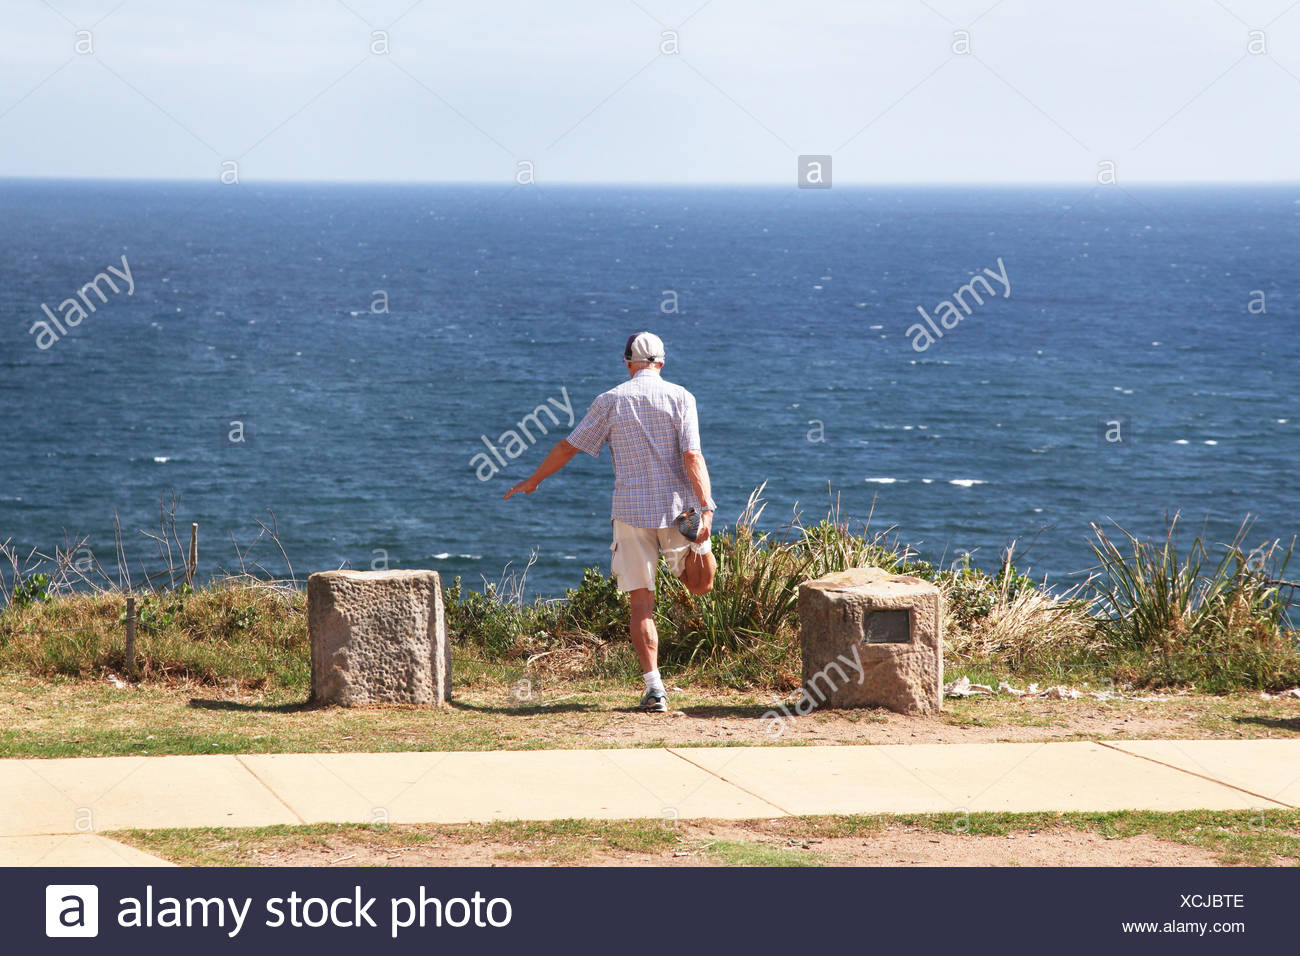 Australia, Nuovo Galles del Sud, Sydney, Man having fitness in front of Pacific Ocean - Stock Image